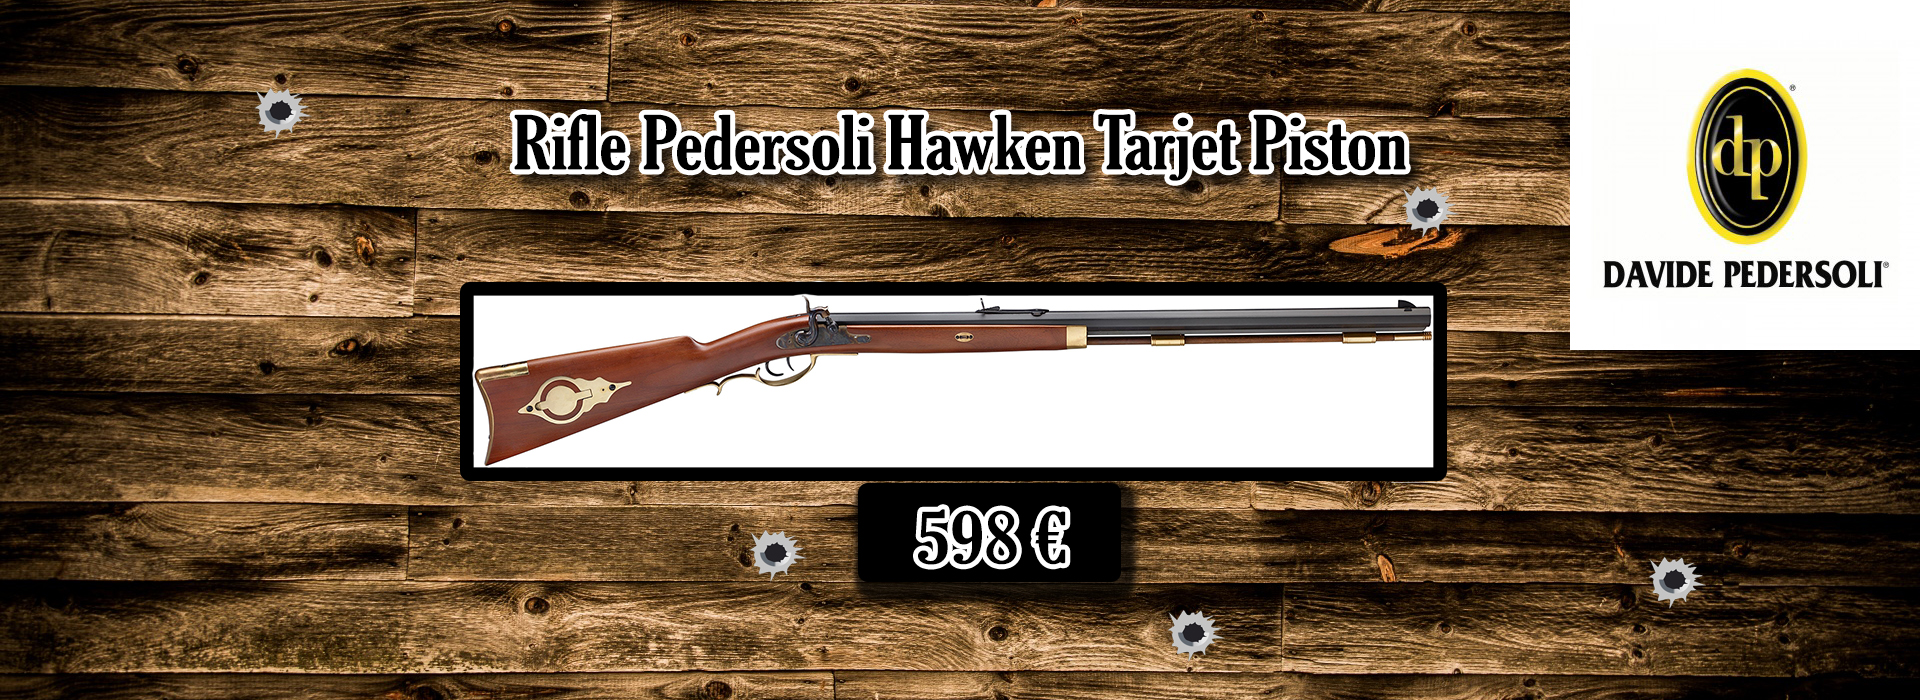 Rifle Pedersoli Hawken Tarjet Piston